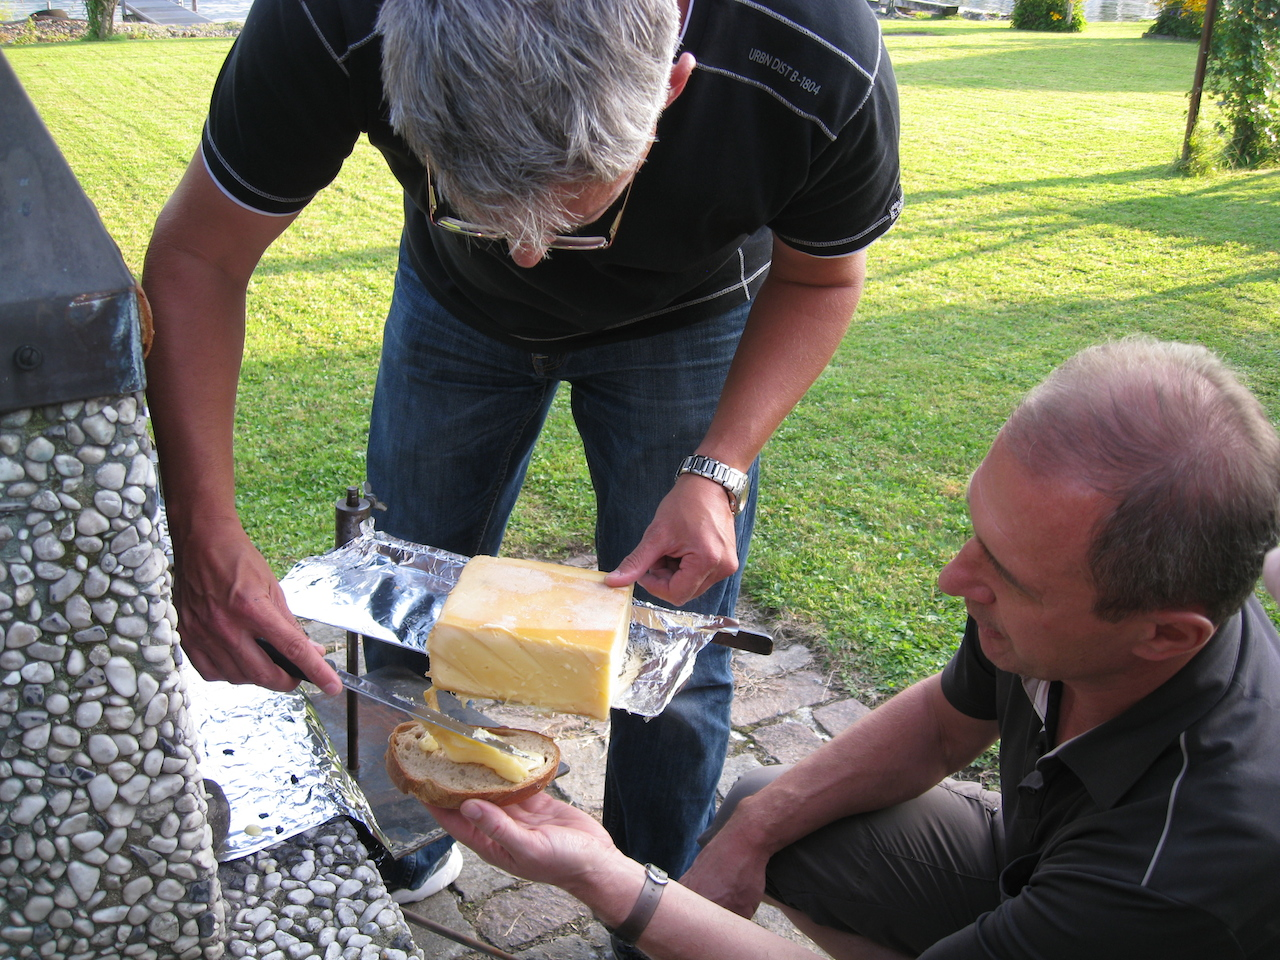 2014-08-22-SF-Raclette-Stampf-010